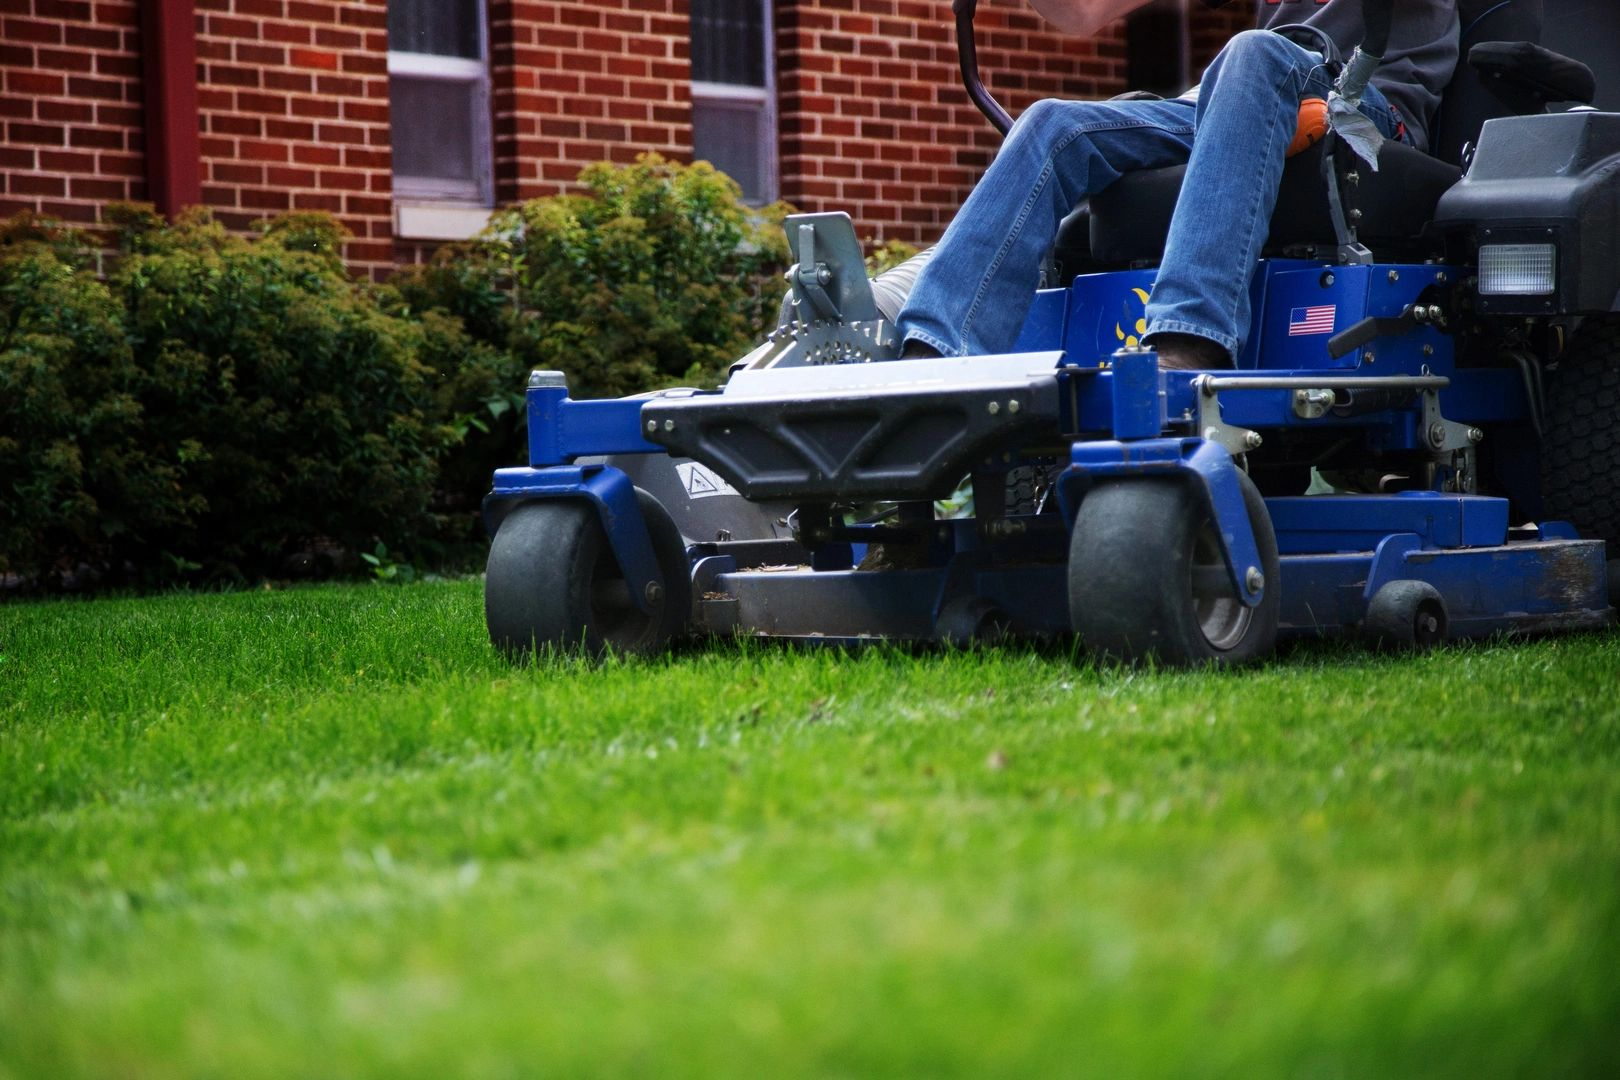 Sioux Falls Lawn Care and Mowing